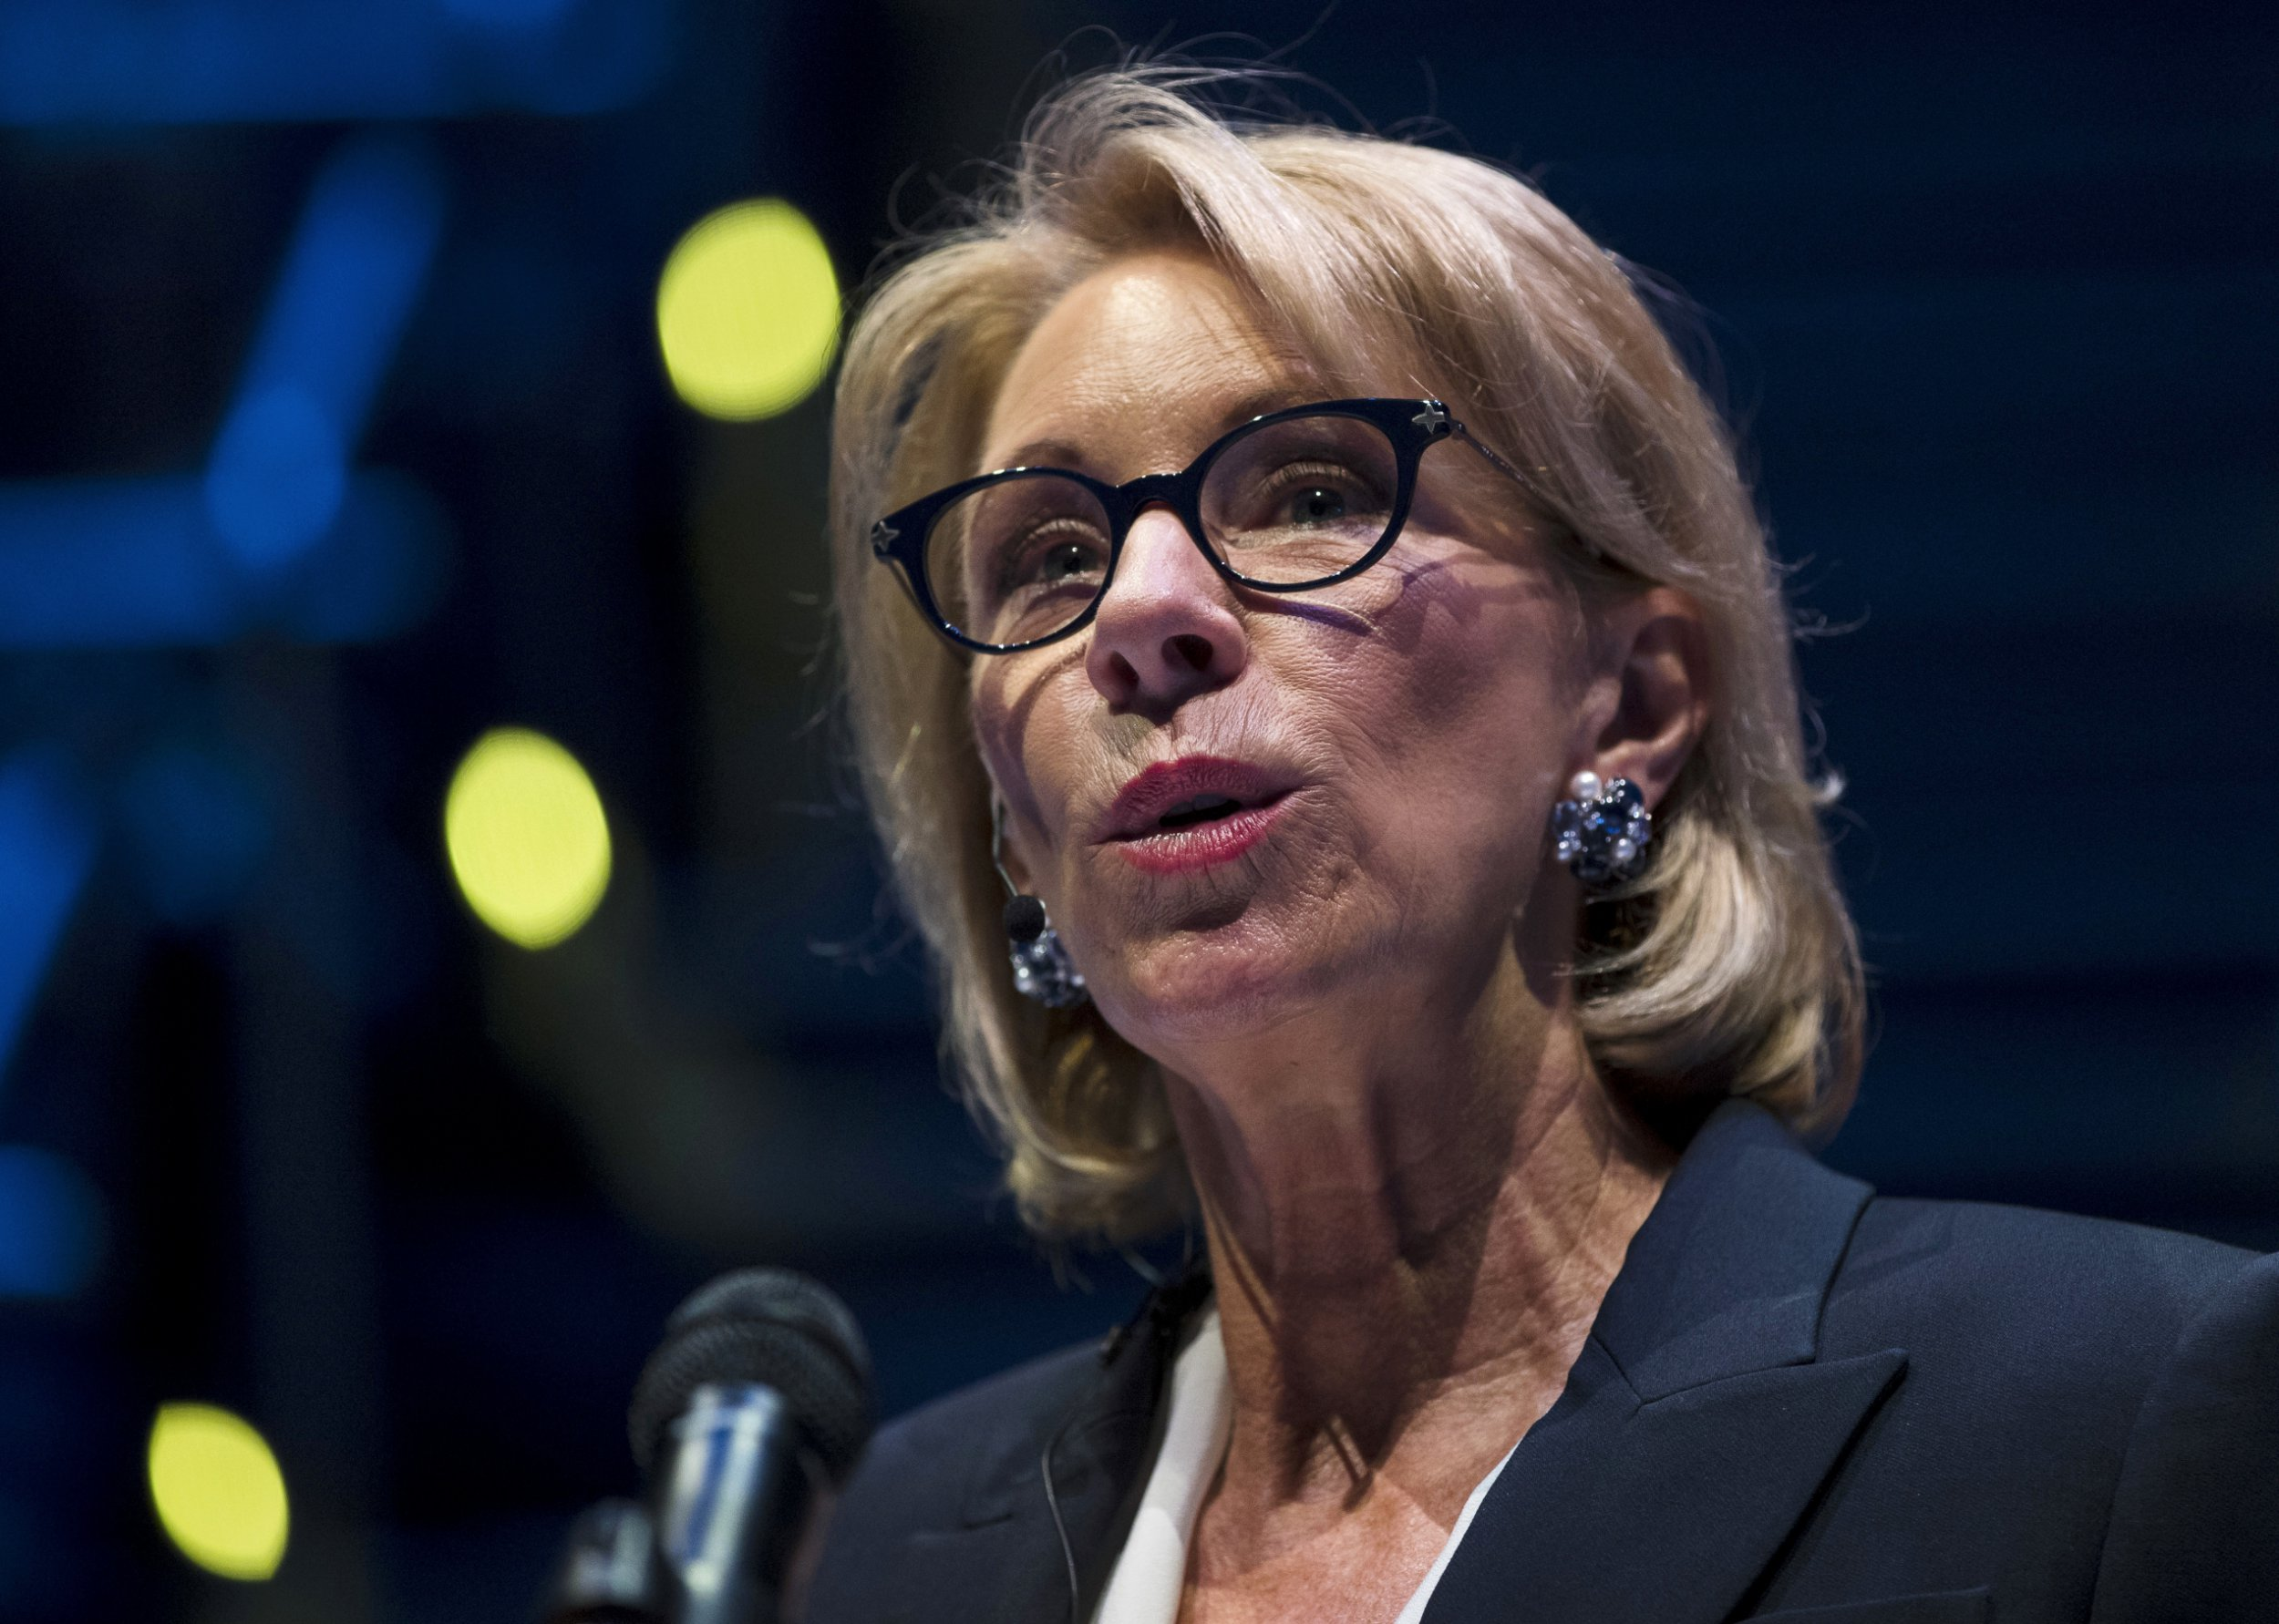 In this Sept. 17, 2018 photo, Education Secretary Betsy DeVos speaks during a student town hall at National Constitution Center in Philadelphia. Education Secretary Betsy DeVos is proposing a major overhaul to the way colleges handle complaints of sexual misconduct. The Education Department released a plan Friday that would require schools to investigate sexual assault and harassment only if it was reported to certain campus officials and only if it occurred on campus or other areas overseen by the school. (AP Photo/Matt Rourke)